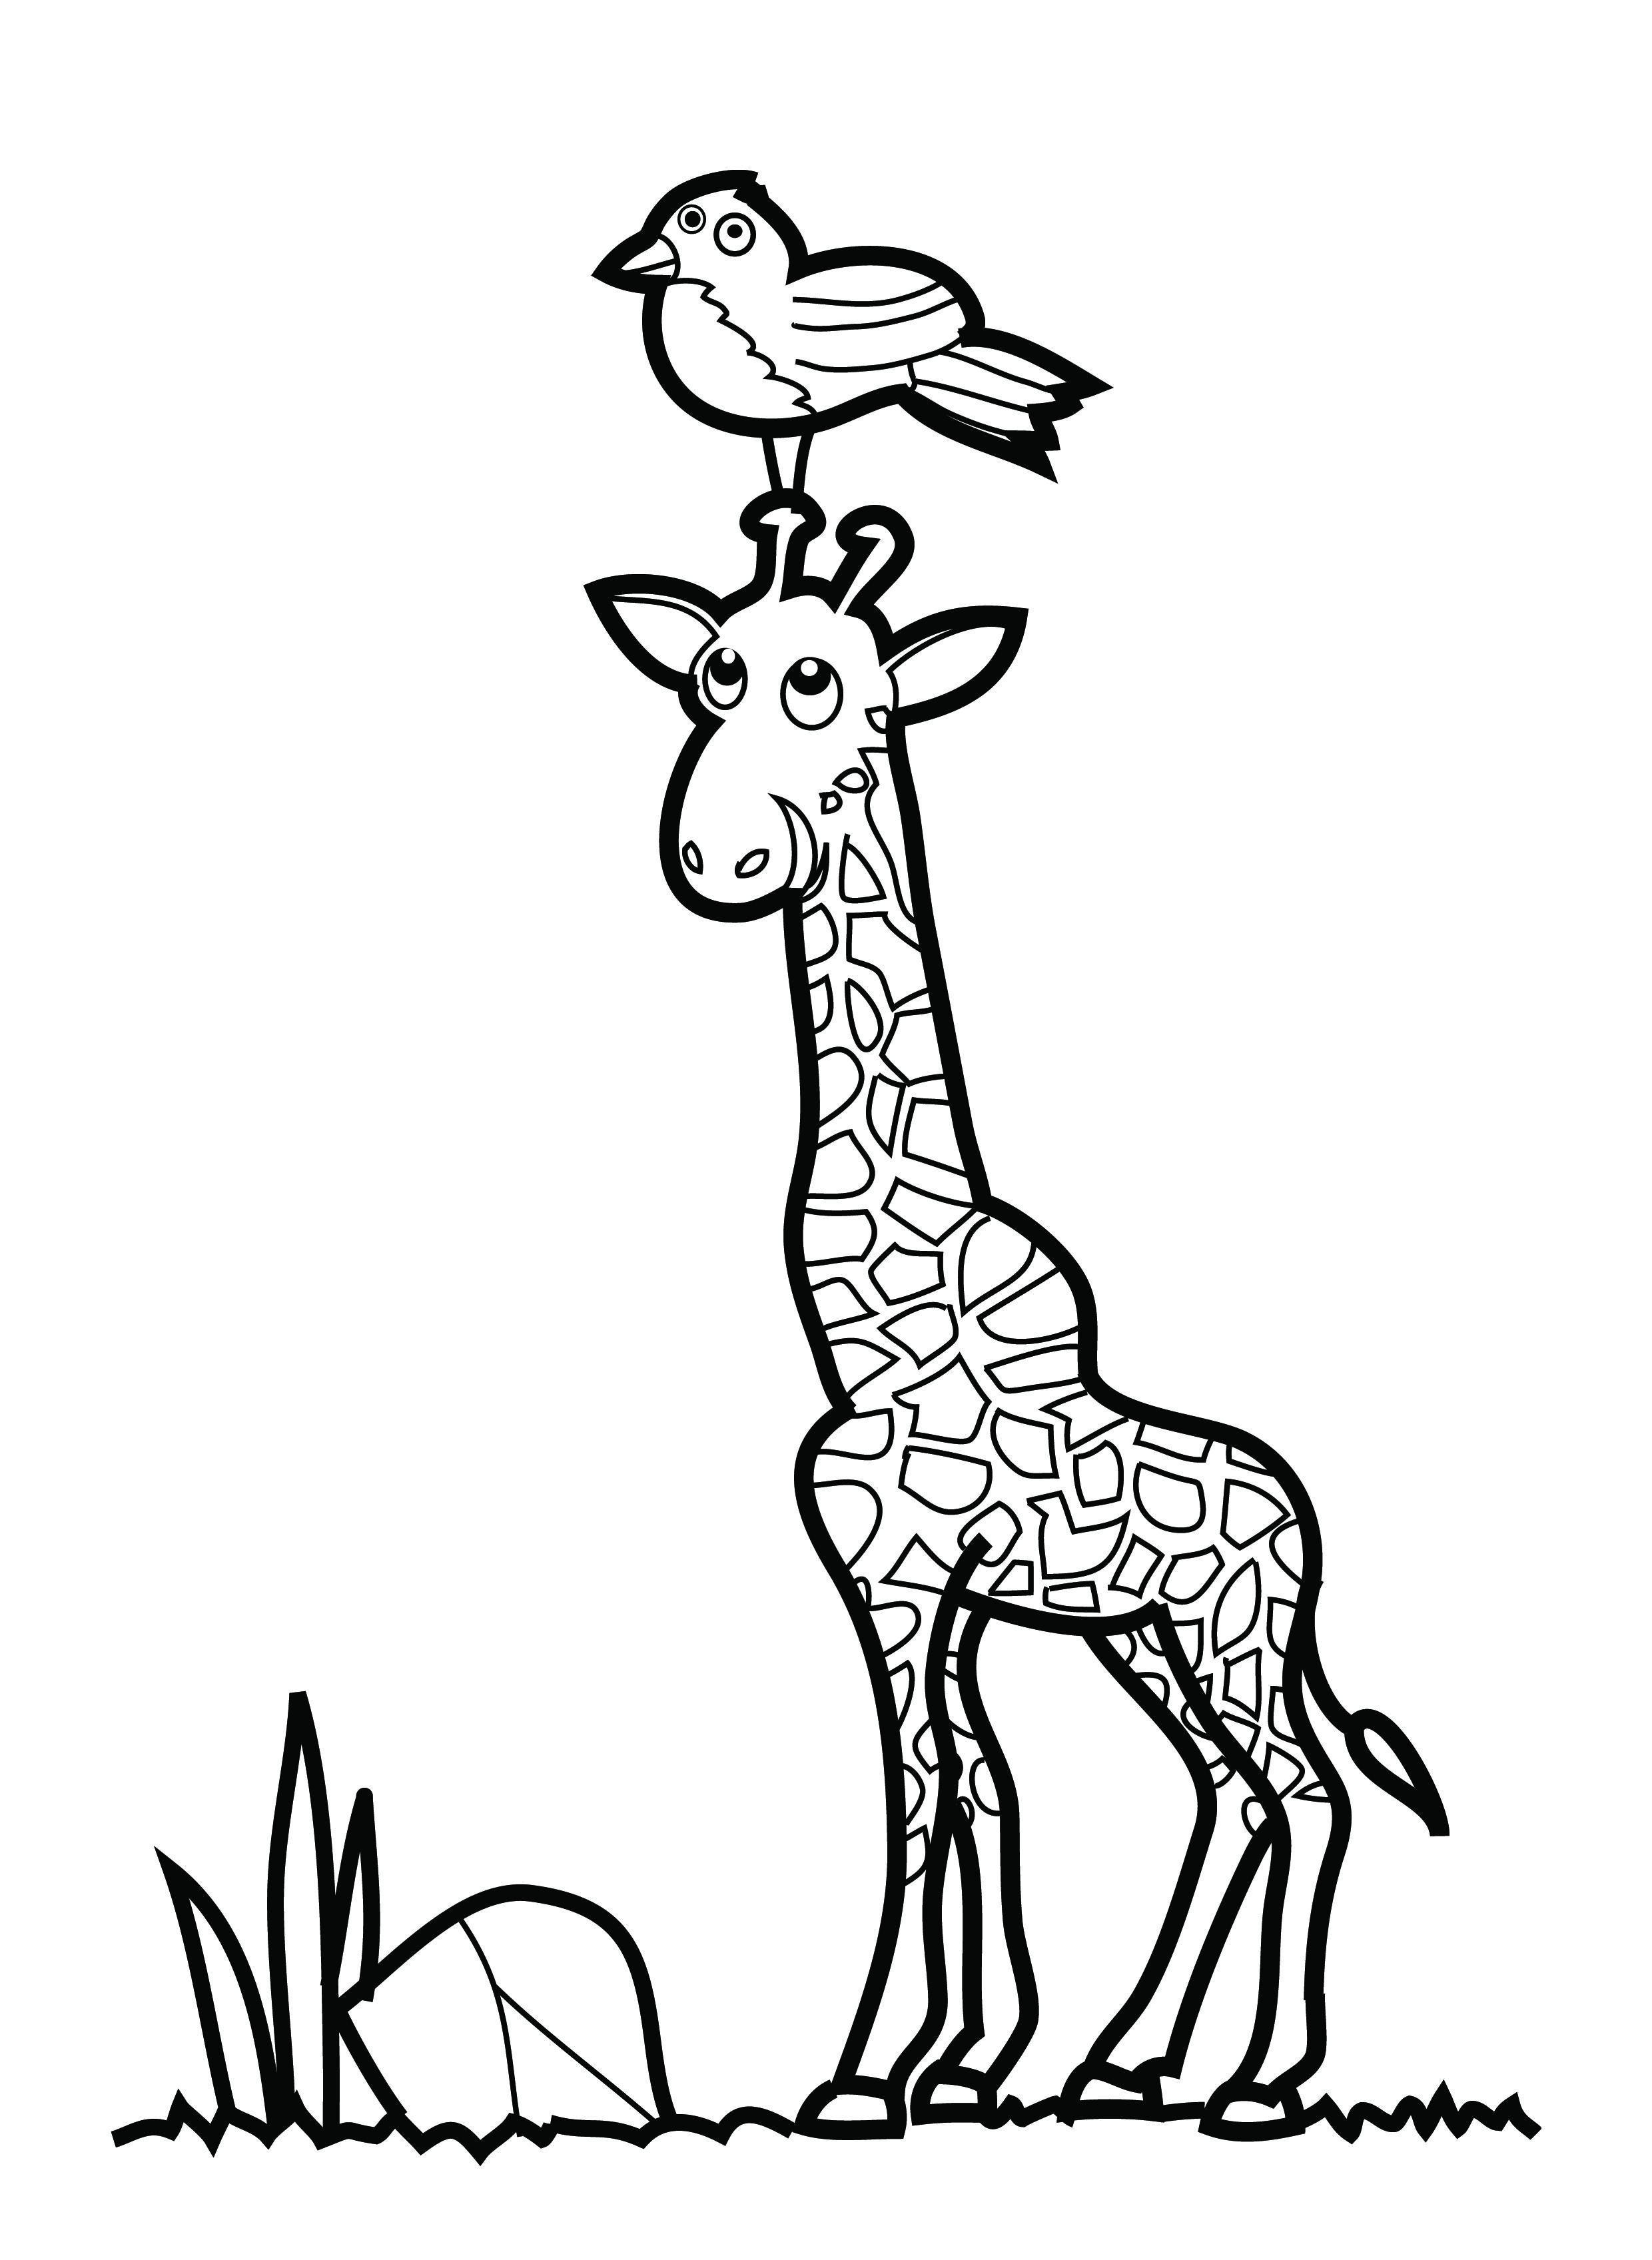 coloring and drawing pages - photo#24